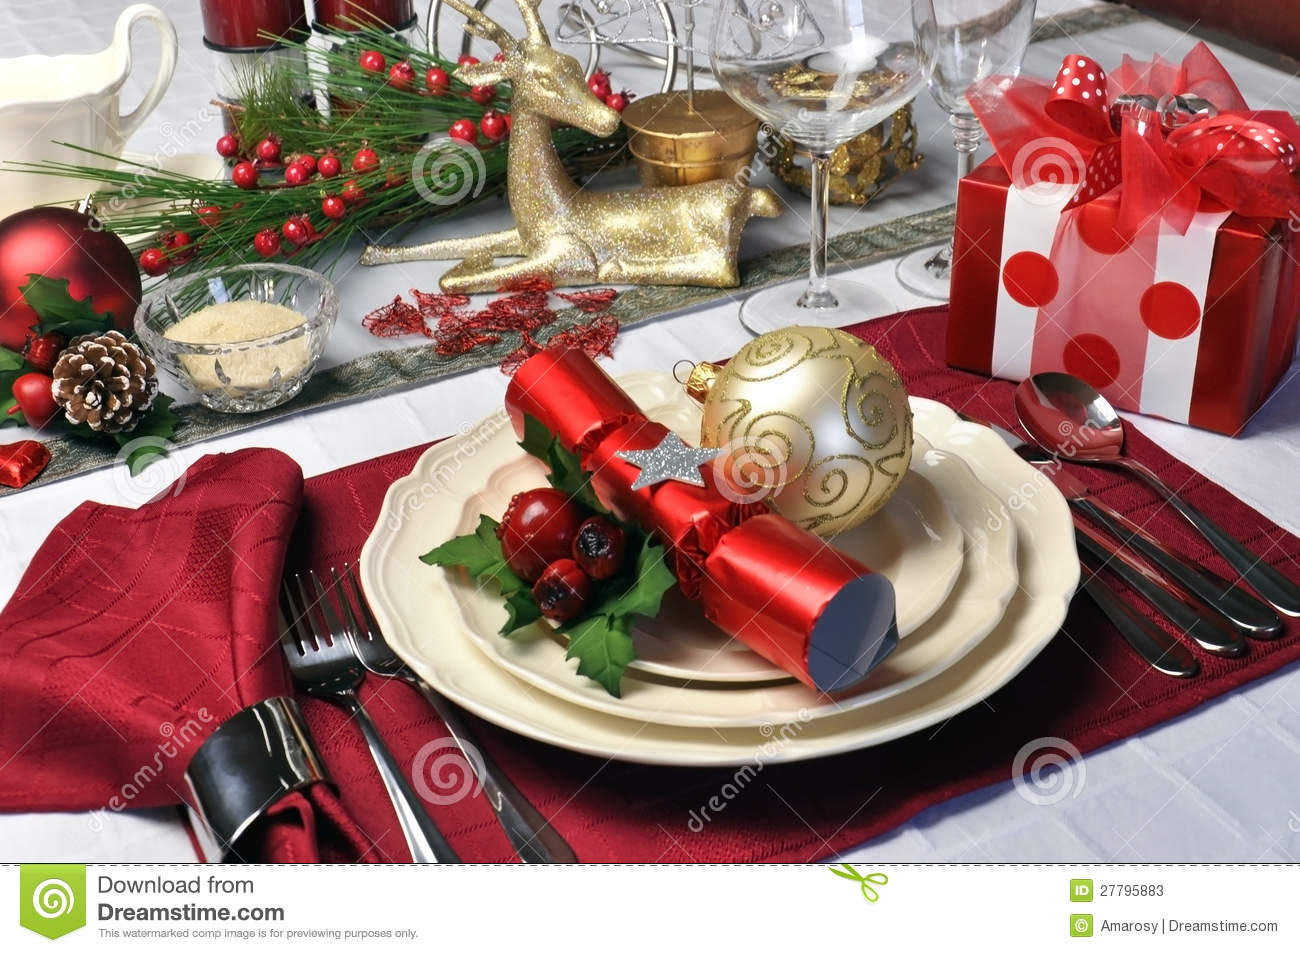 Red Christmas Day Table Setting With Present Stock Image